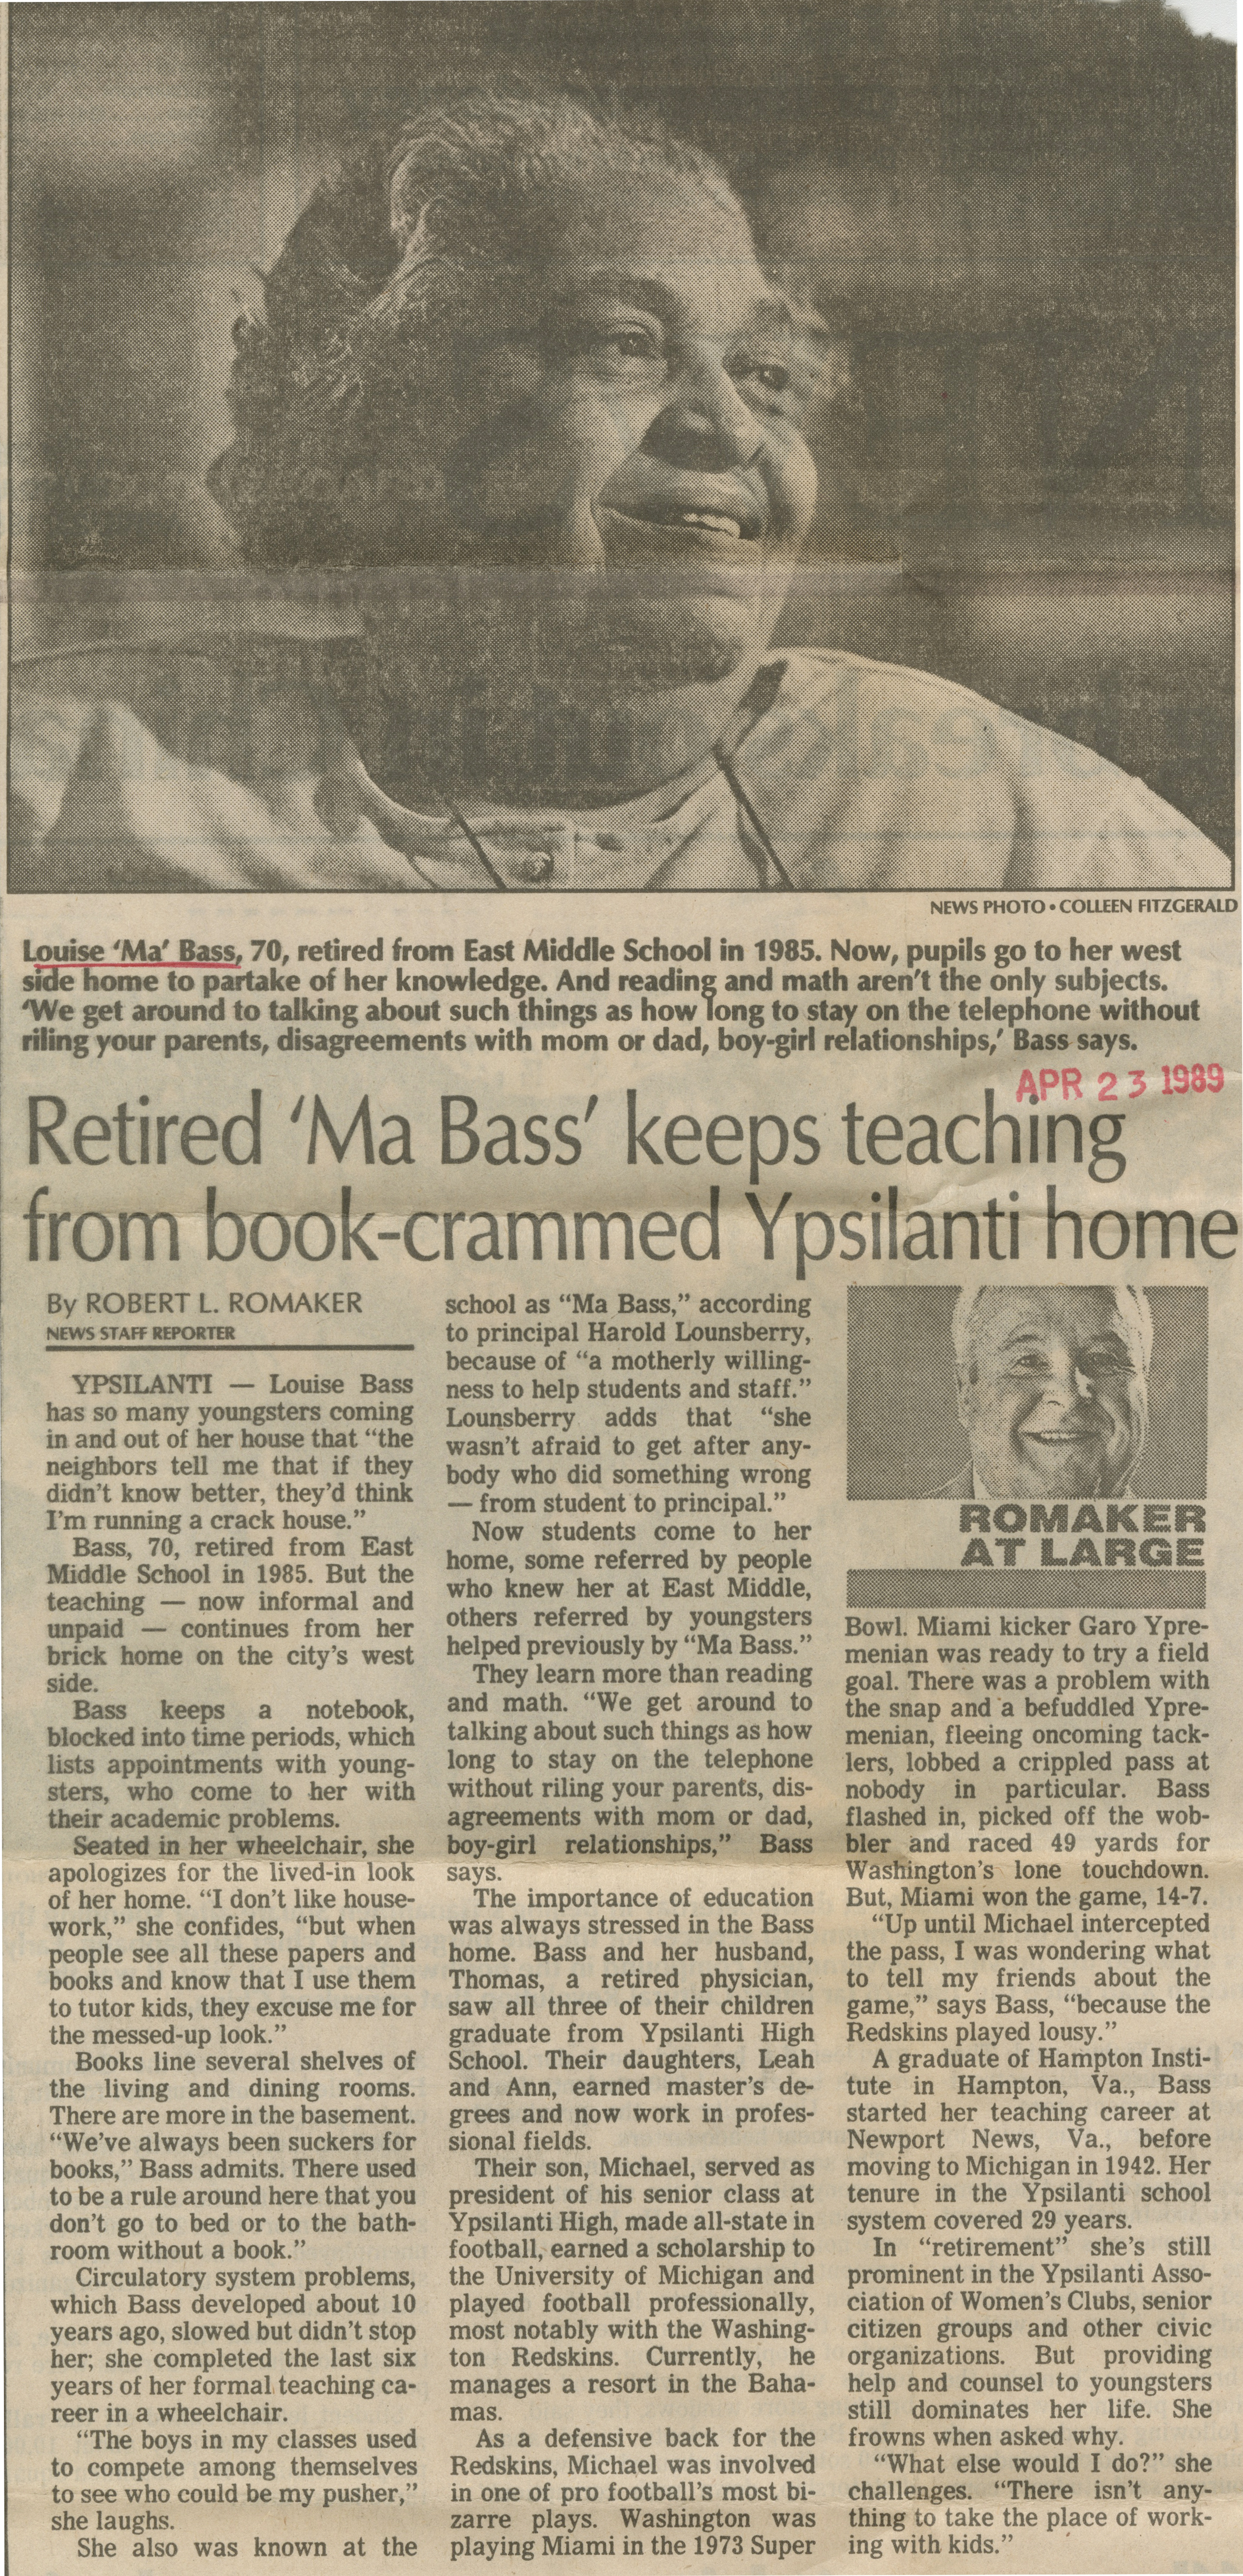 Retired 'Ma Bass' keeps teaching from book-crammed Ypsilanti home image